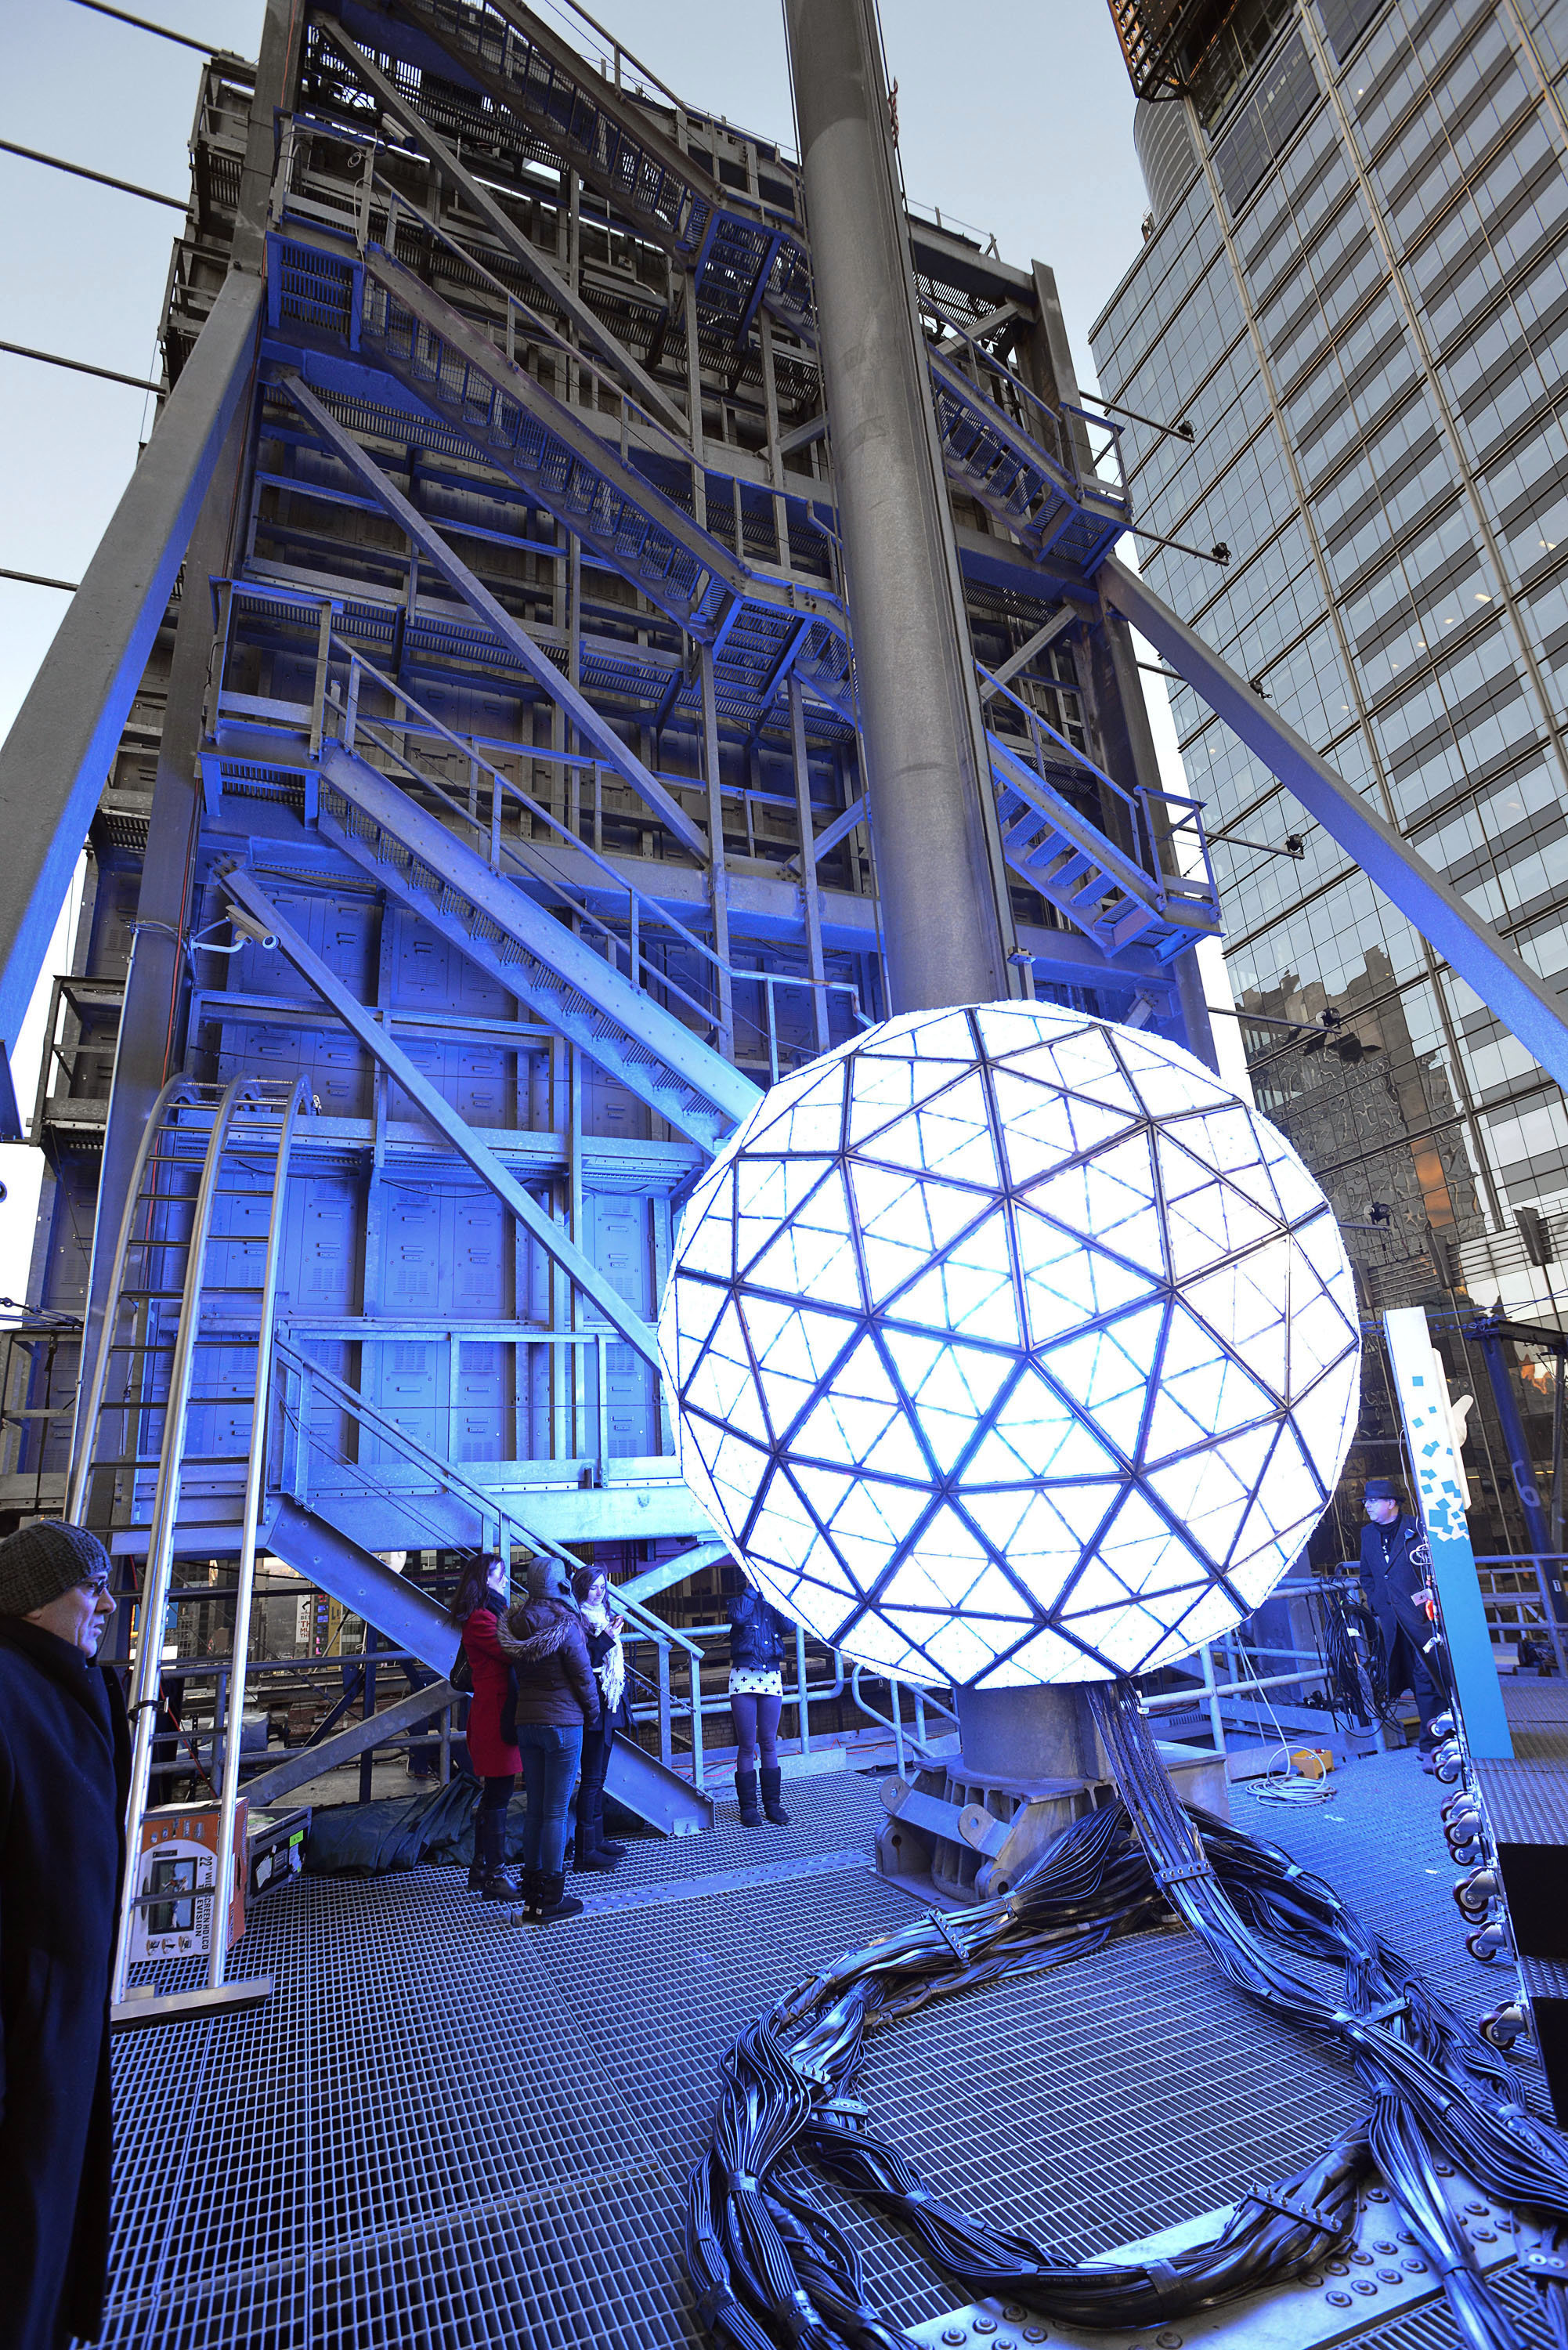 """NEW YORK, NY - DECEMBER 30: """"Waterford Crystal Ball"""" for countdown event at Times Square on December 30, 2012 in New York City. (Photo by Eugene Gologursky/Getty Images)"""